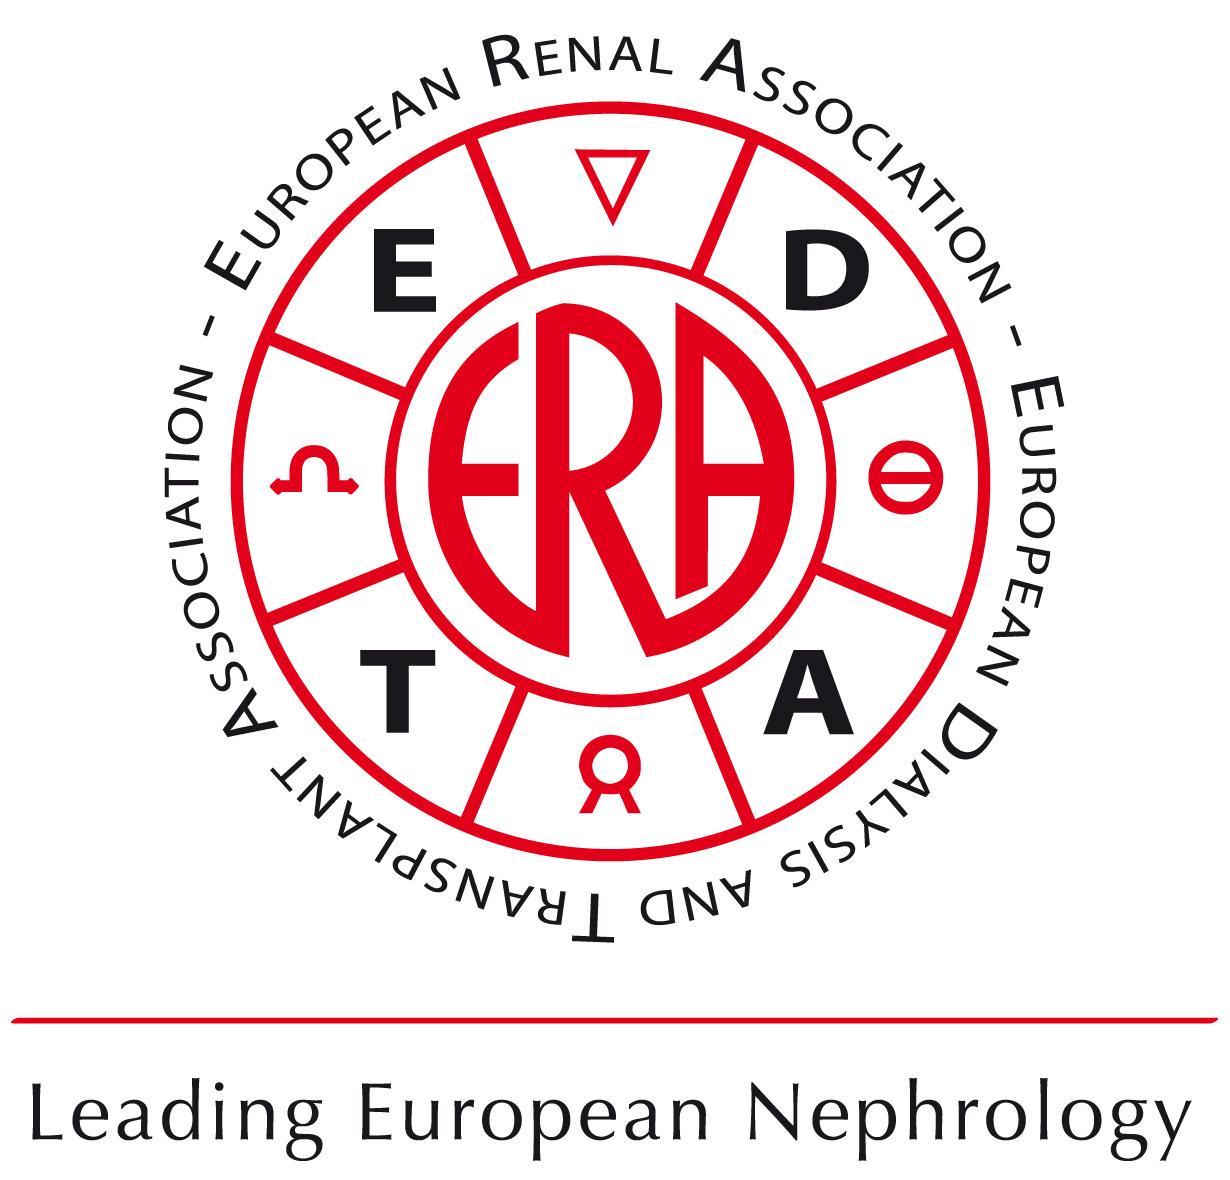 ERA-EDTA logo new 1014 2